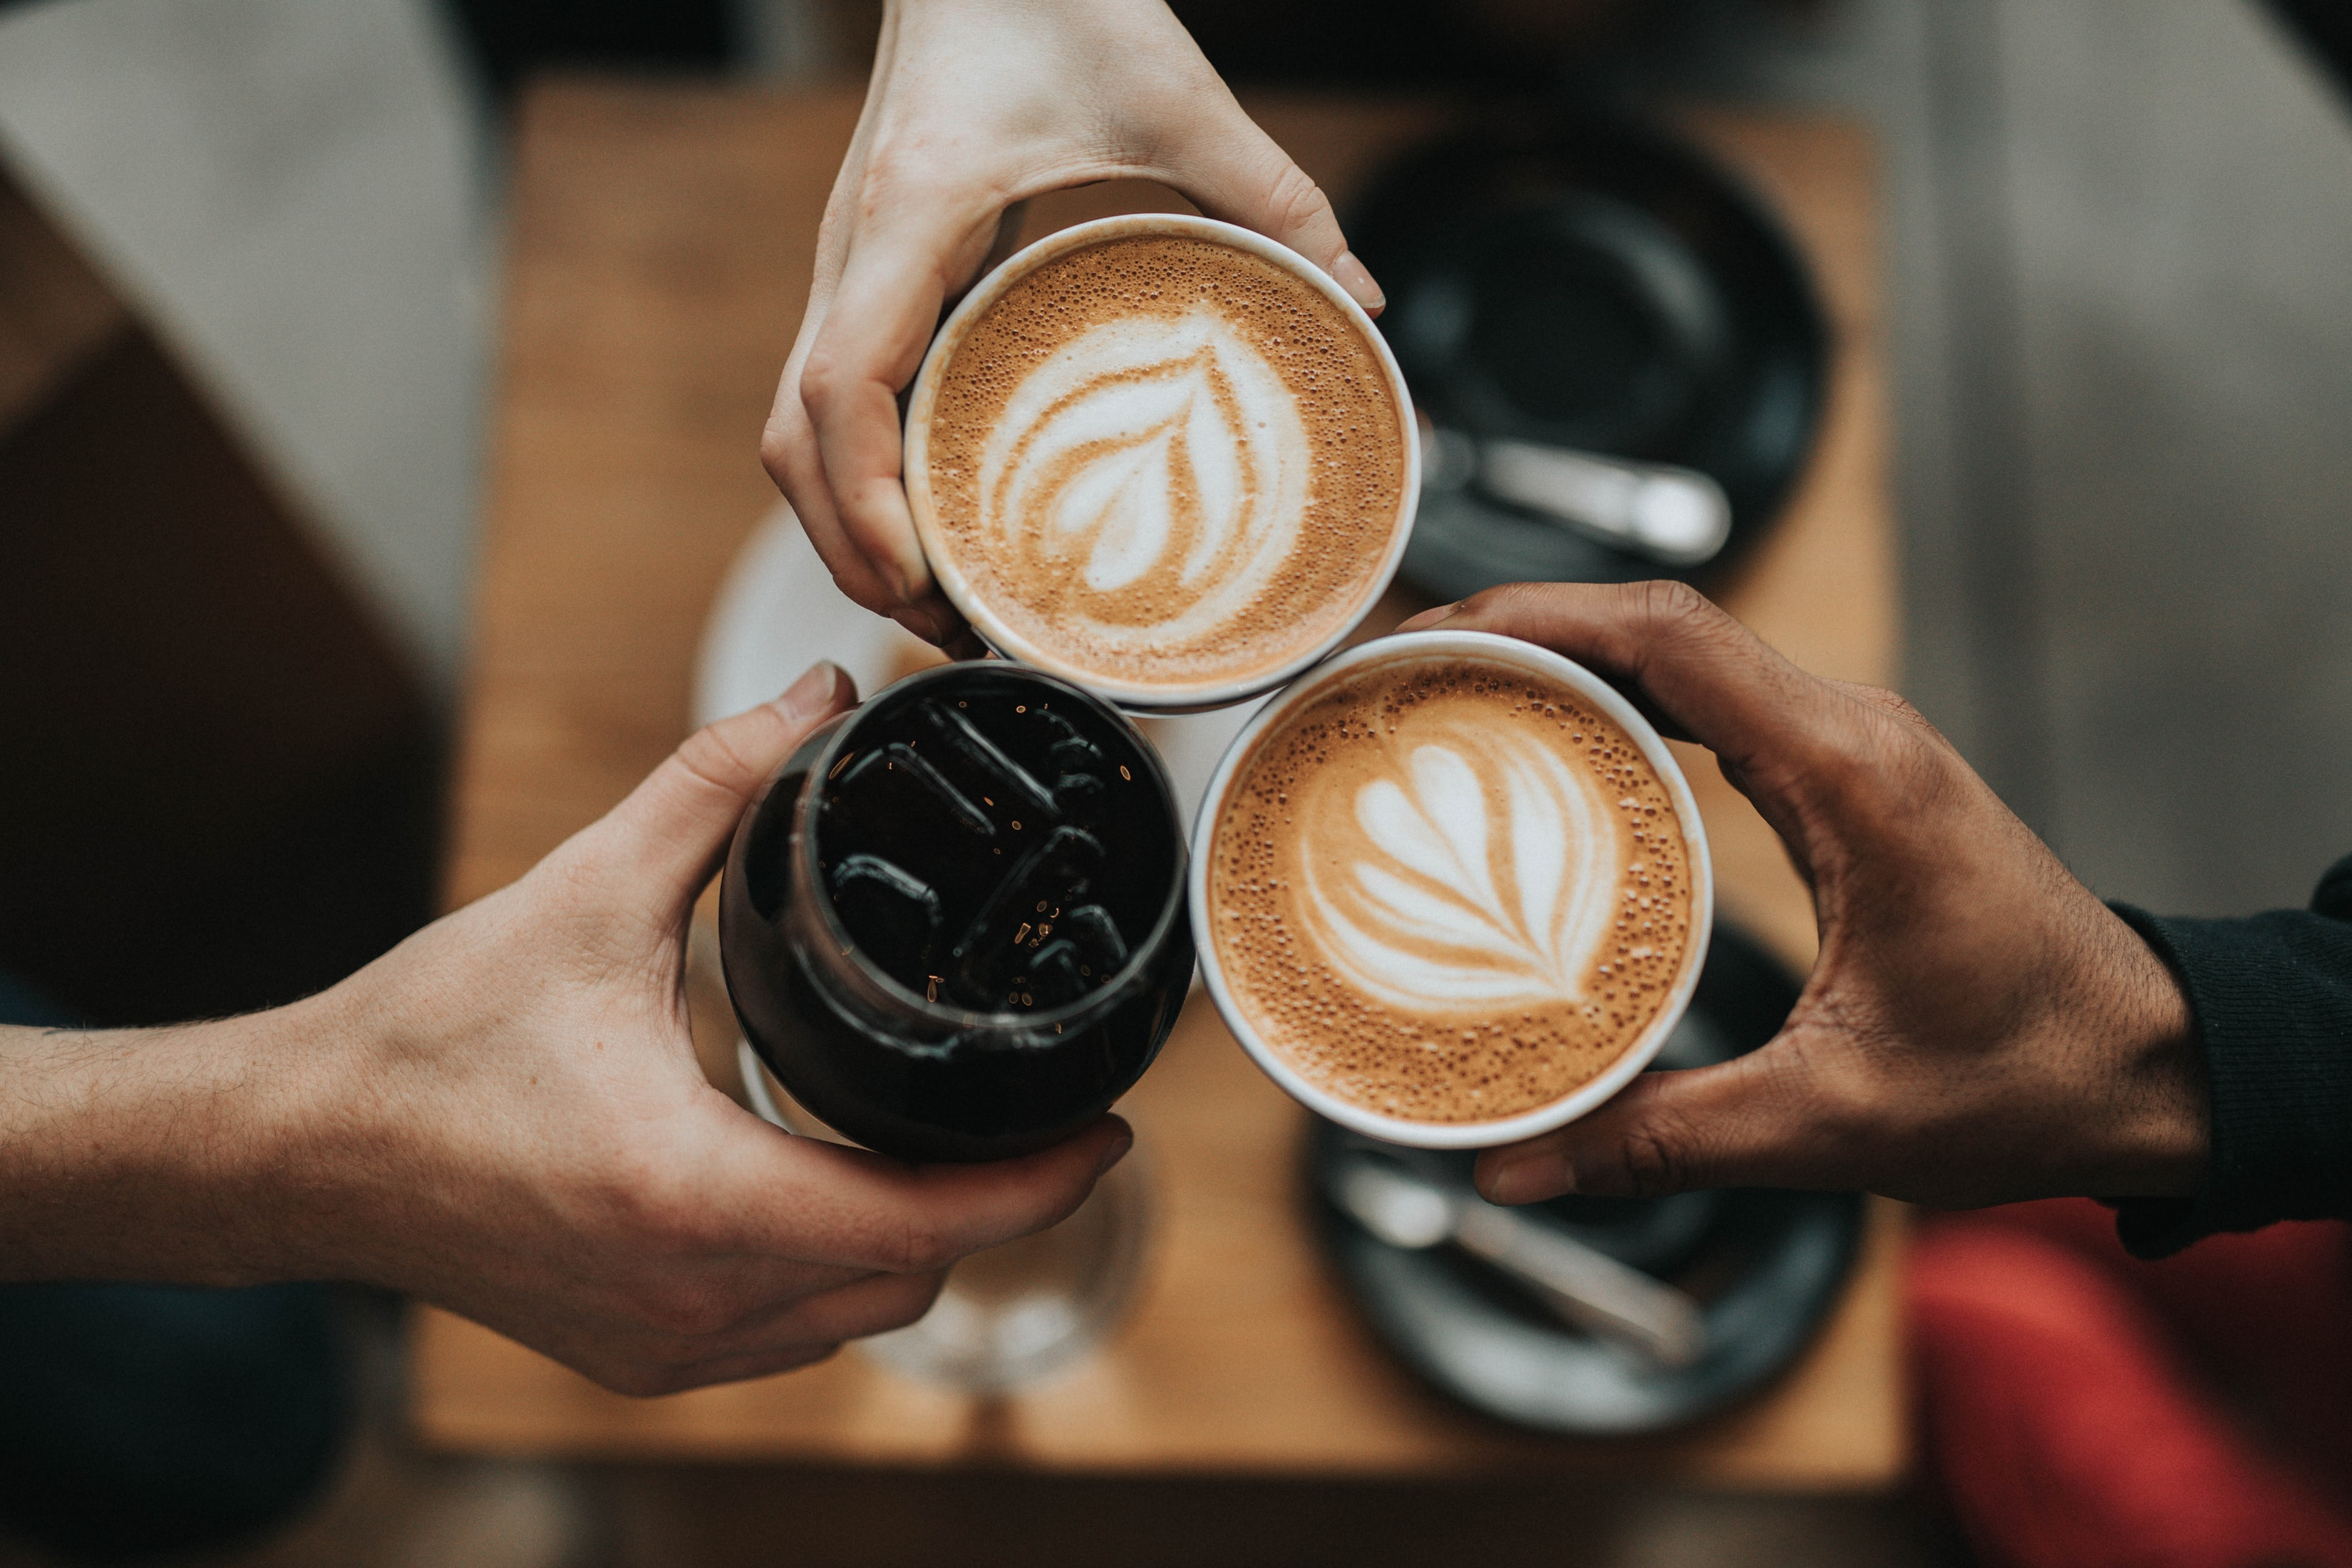 People holding coffee drinks together